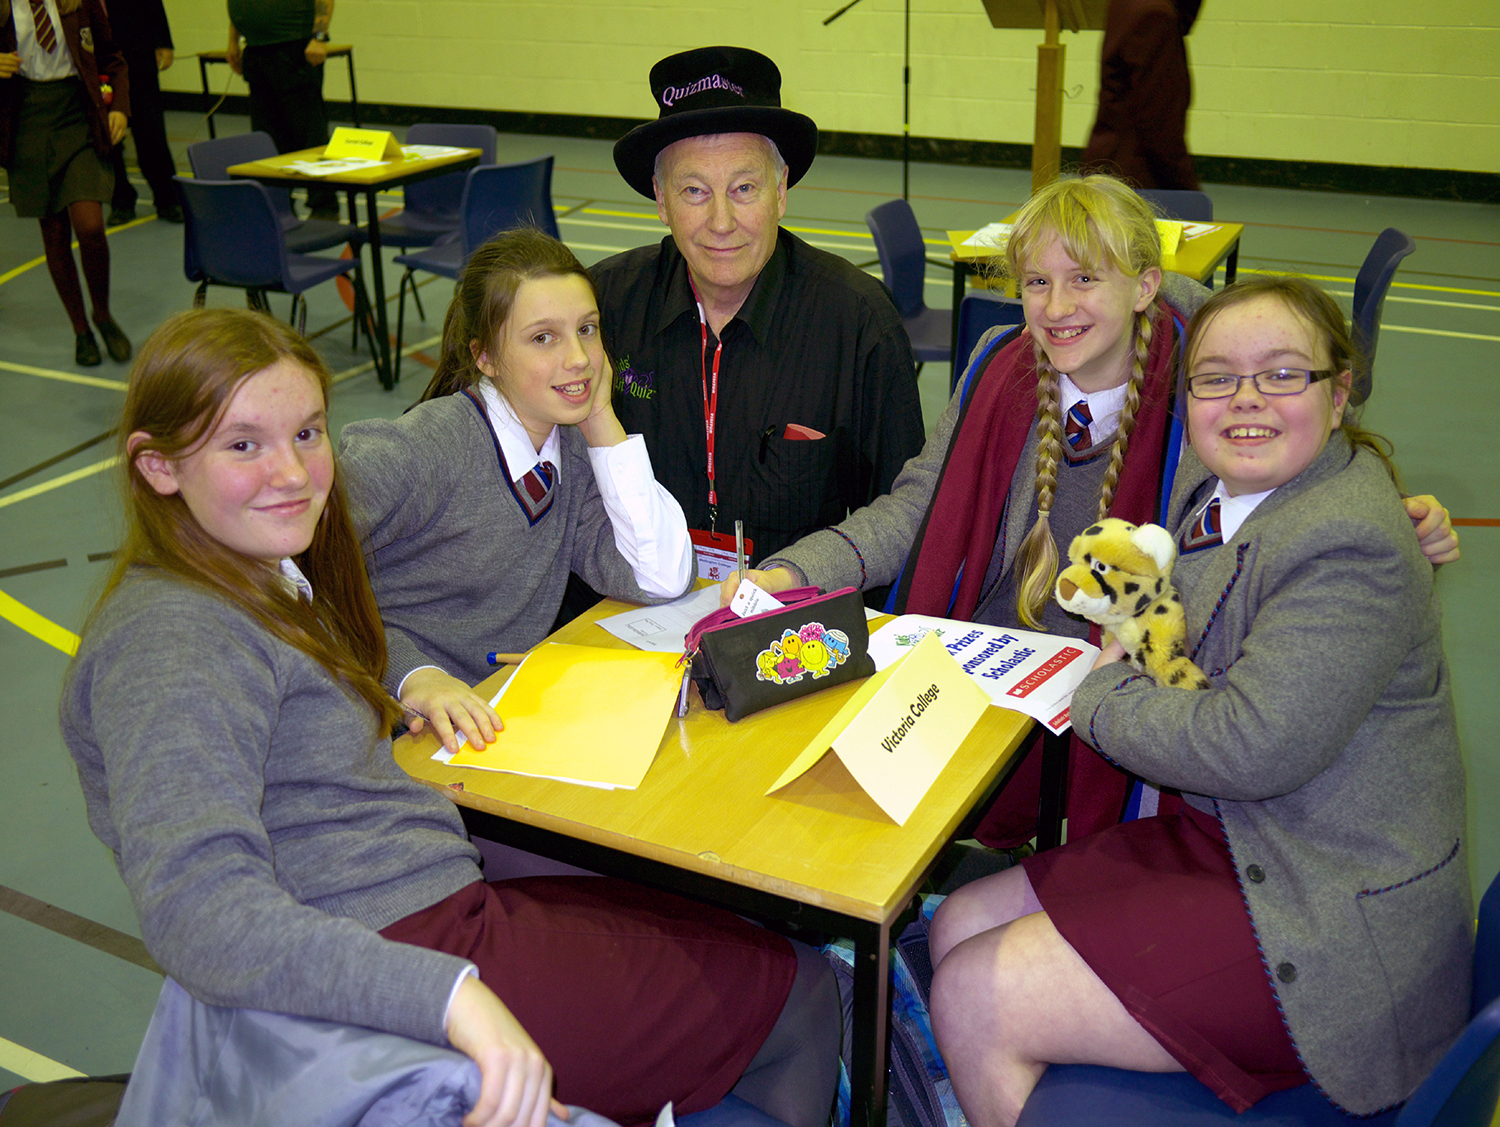 Normal   0           false   false   false     EN-GB   X-NONE   X-NONE                                        MicrosoftInternetExplorer4                                           The VCB team at the 2013 Kids Lit Quiz finals in Belfast http://www.kidslitquiz.com/ . They are pictured with quizmaster Wayne Mills. Over 30 local schools took part; VCB finished in the top 10 but the event was won by Killicomaine Junior High, Portadown.                                                                                                                                                                                                                                                                                                 st1\:*{behavior:url(#ieooui) }